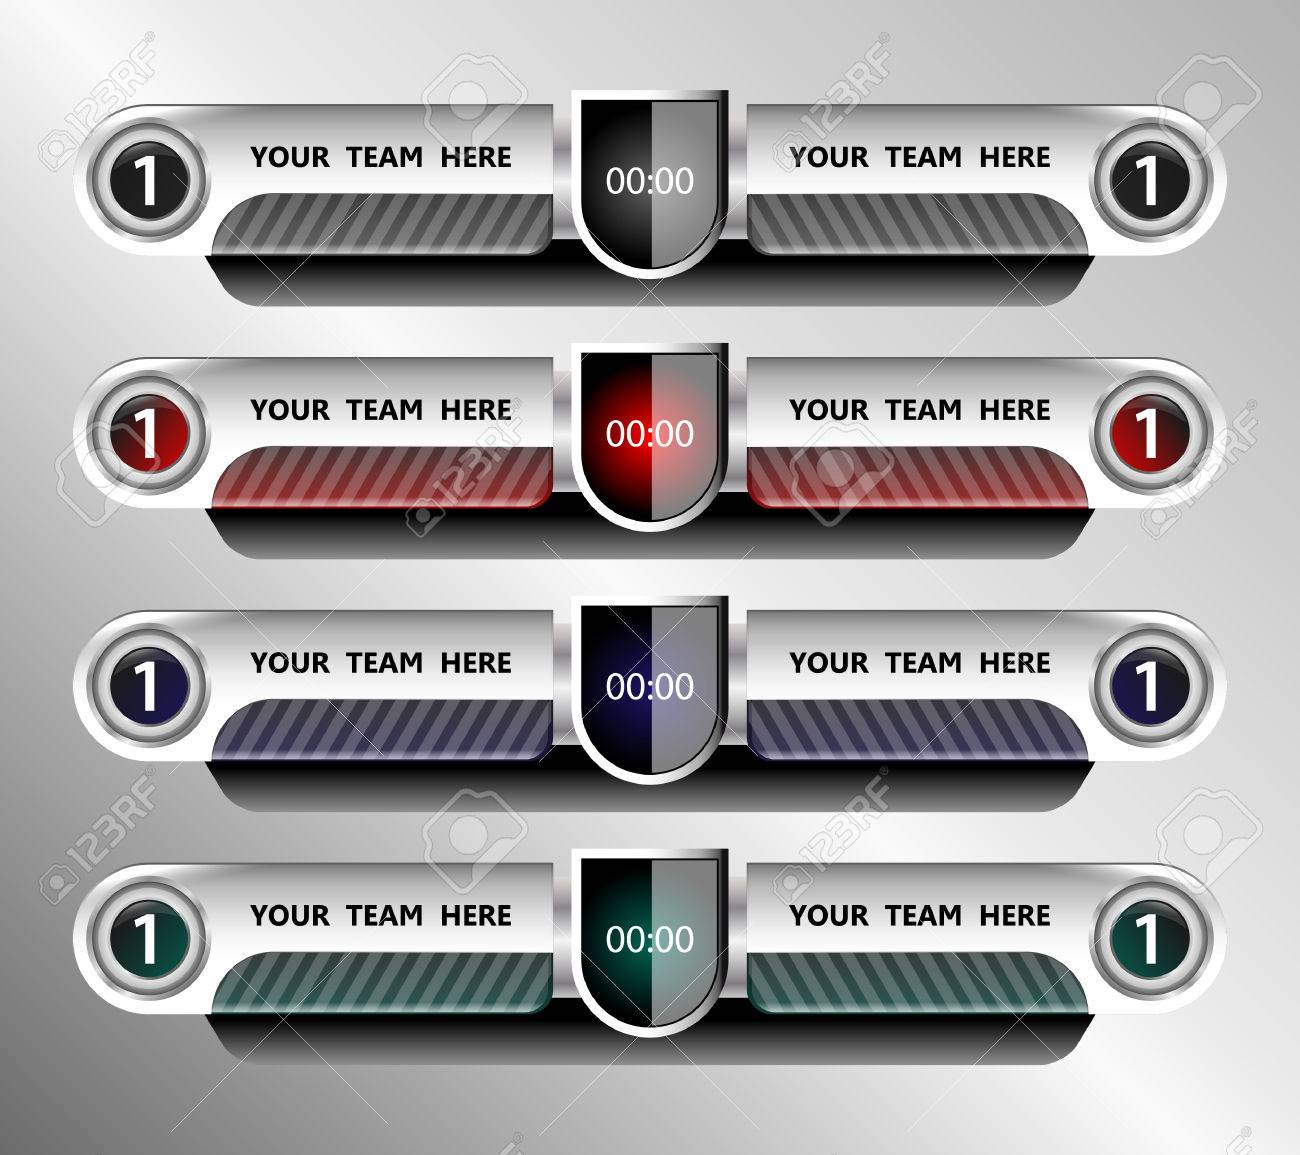 Football And Soccer Scoreboard Template On Grey Background – Scoreboard Template